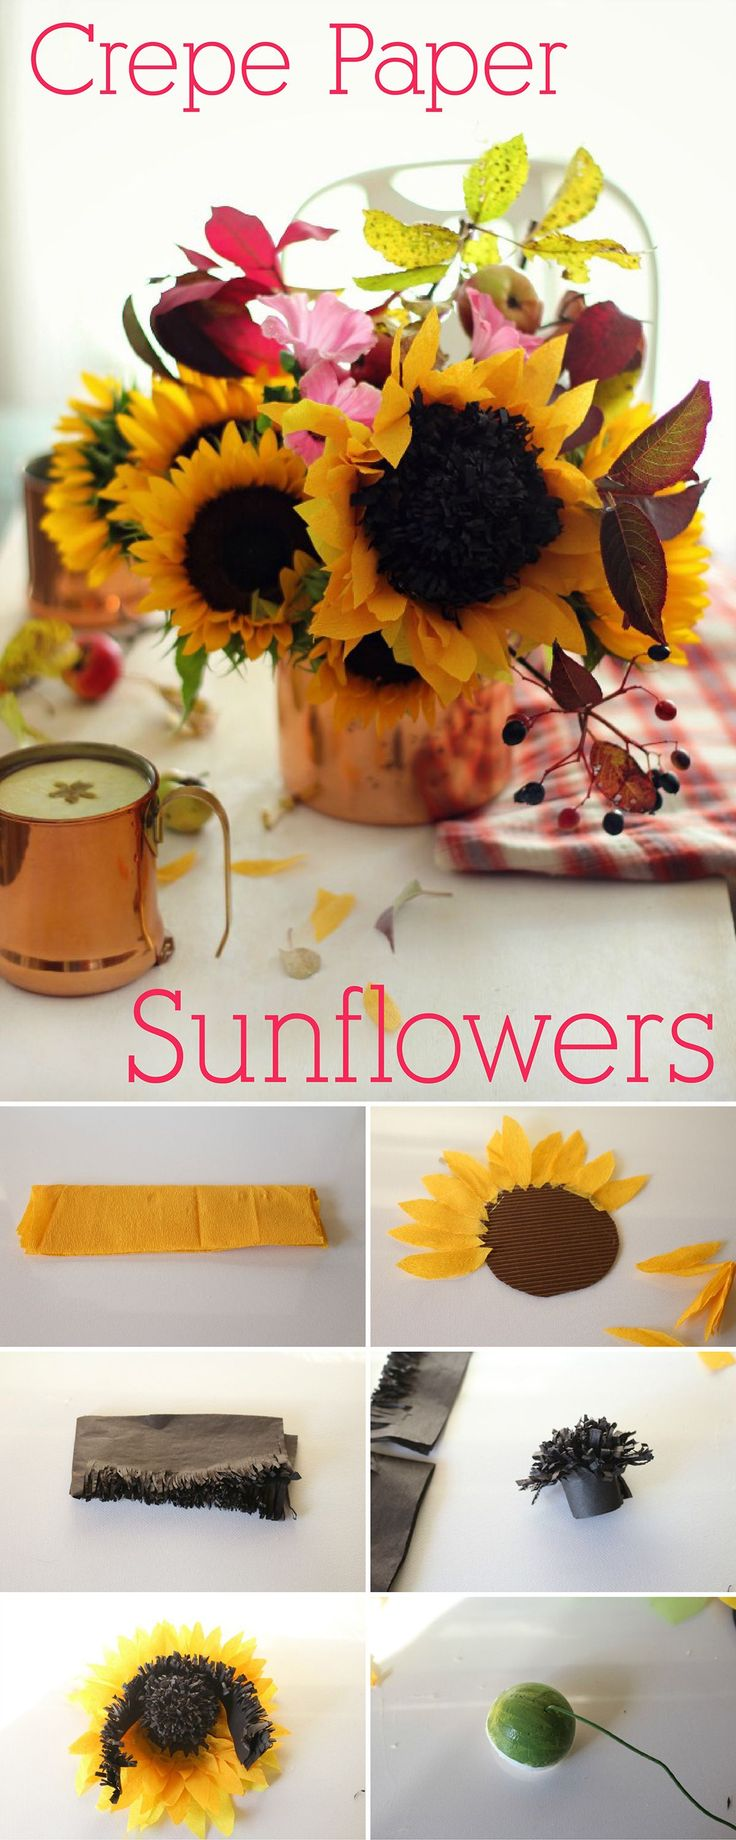 Crepe paper is the BEST! How gorgeous are these crepe paper sunflowers?  Exactly what